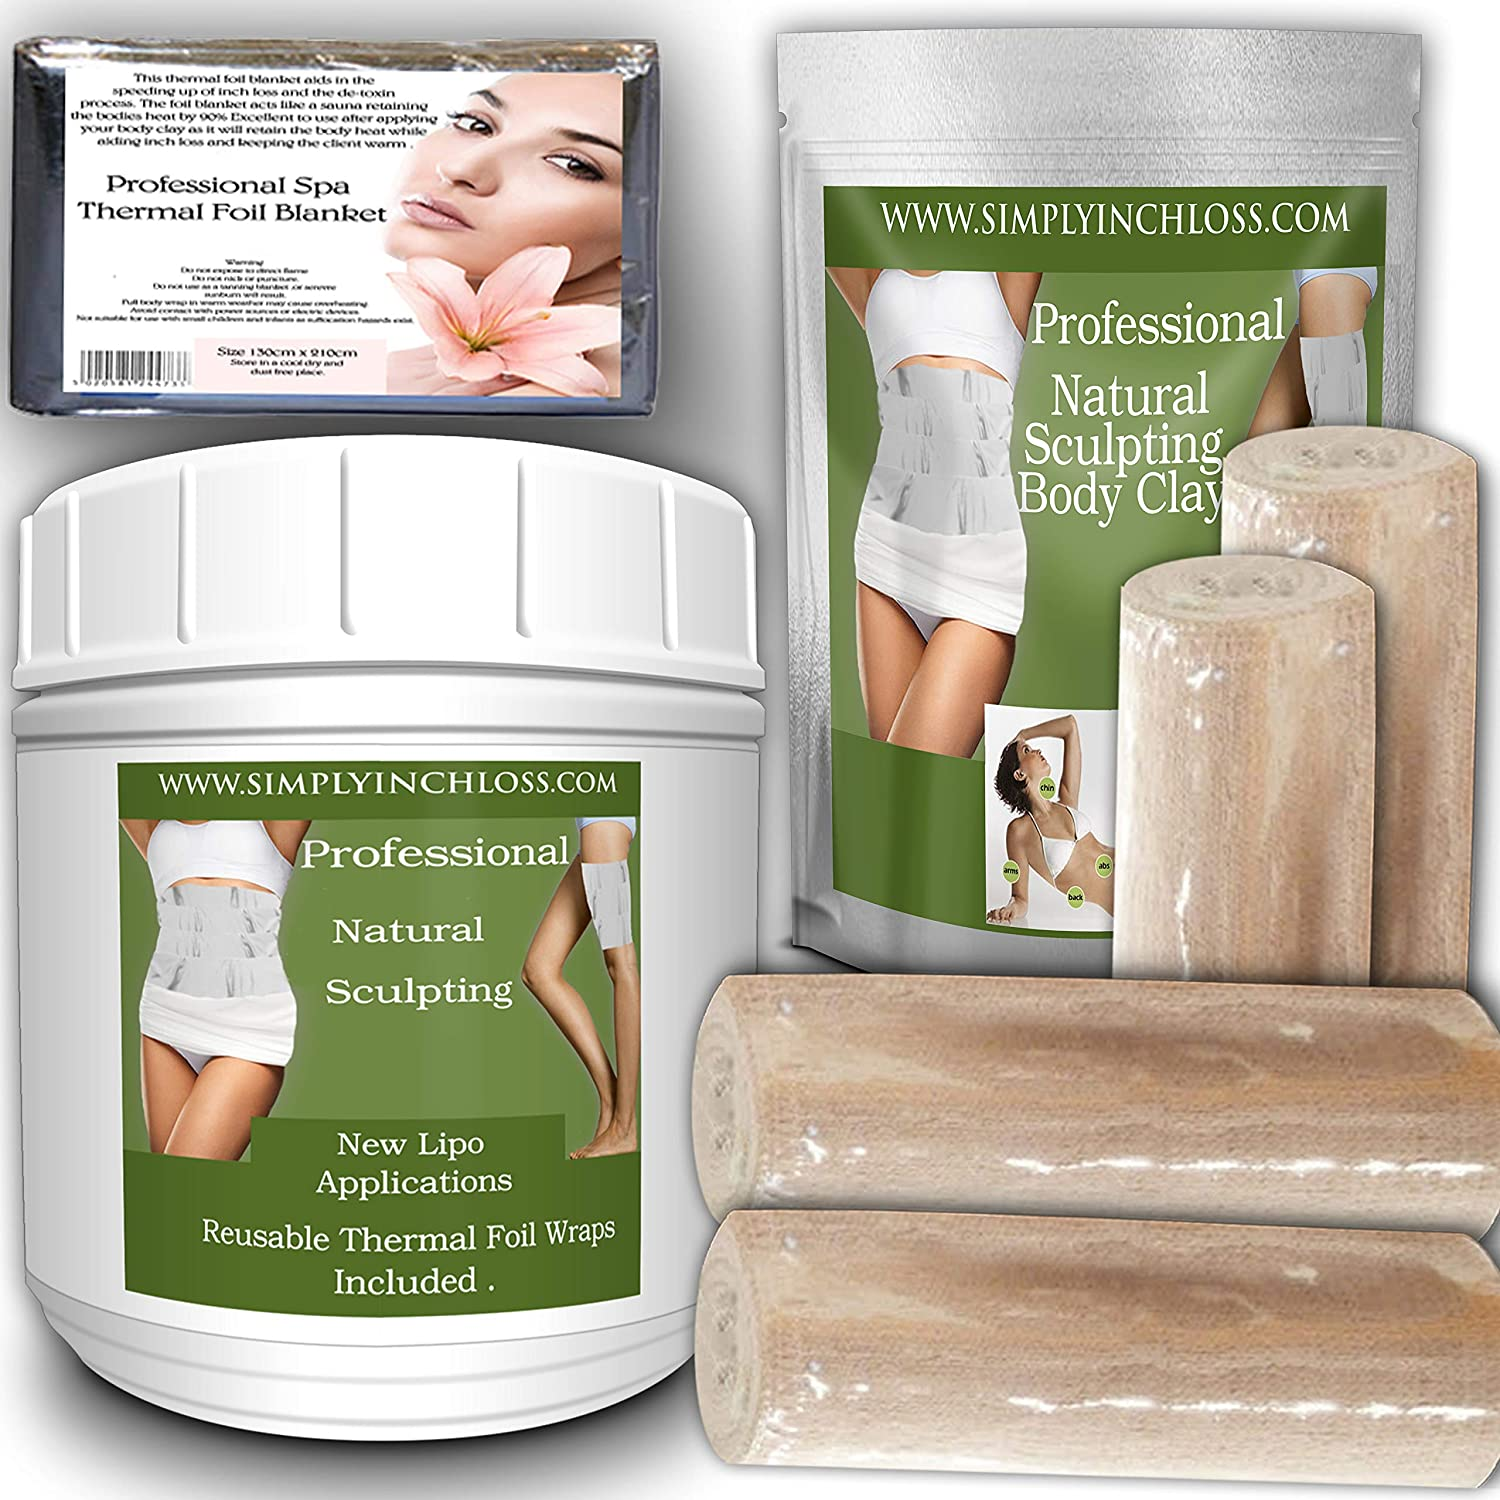 tummy mummy new improved formula body clay wrap instant inch-loss home spa kit 4 contouring bandage divineclay mch 12045